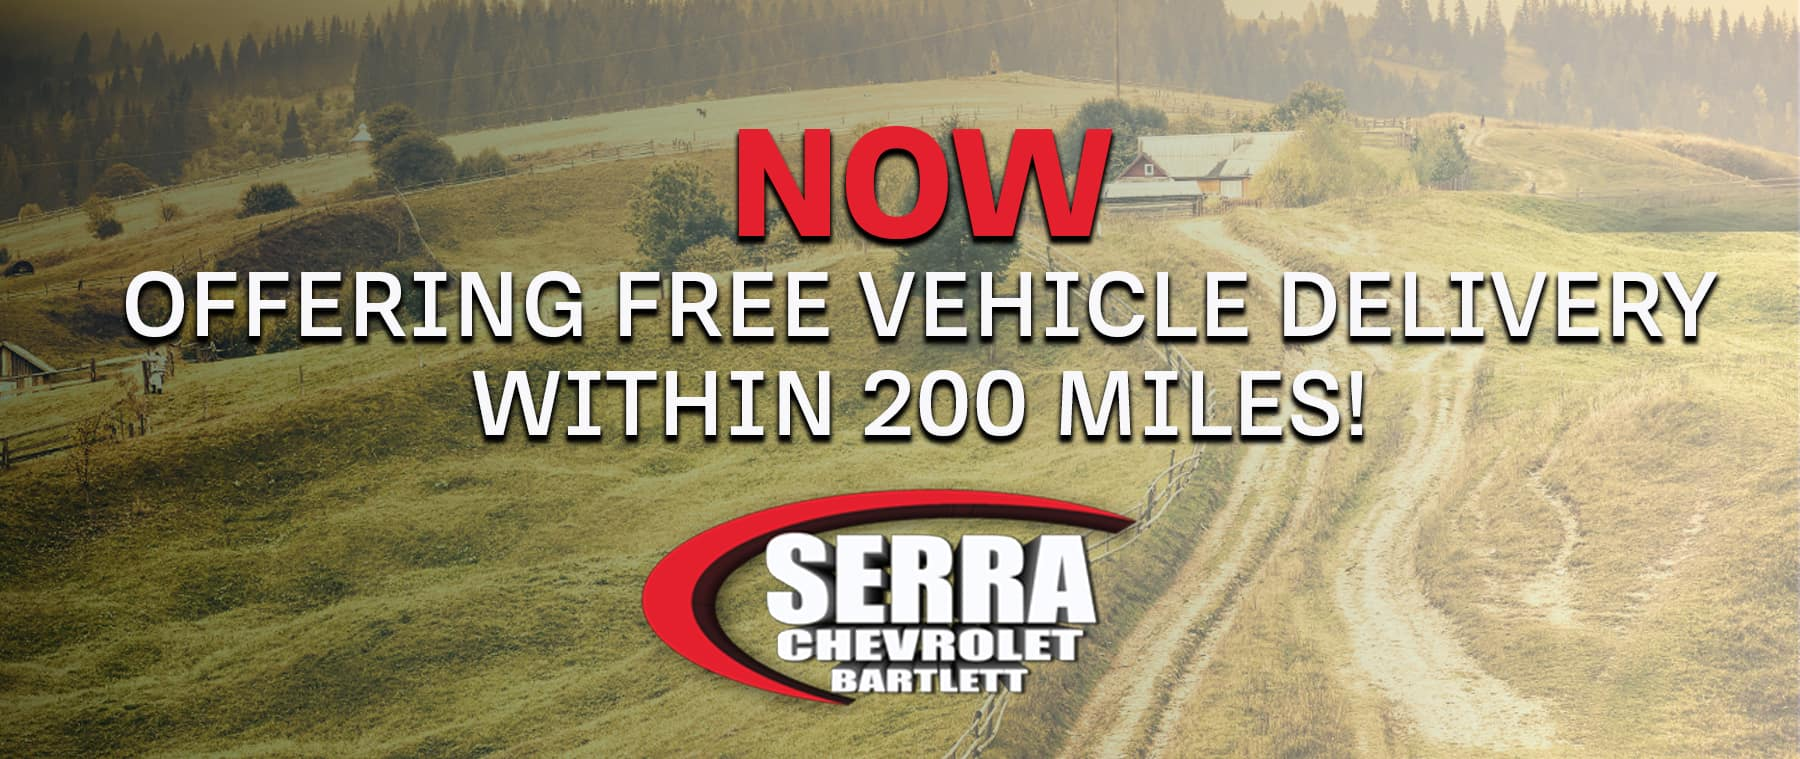 Free Vehicle Delivery Within 200 Miles!